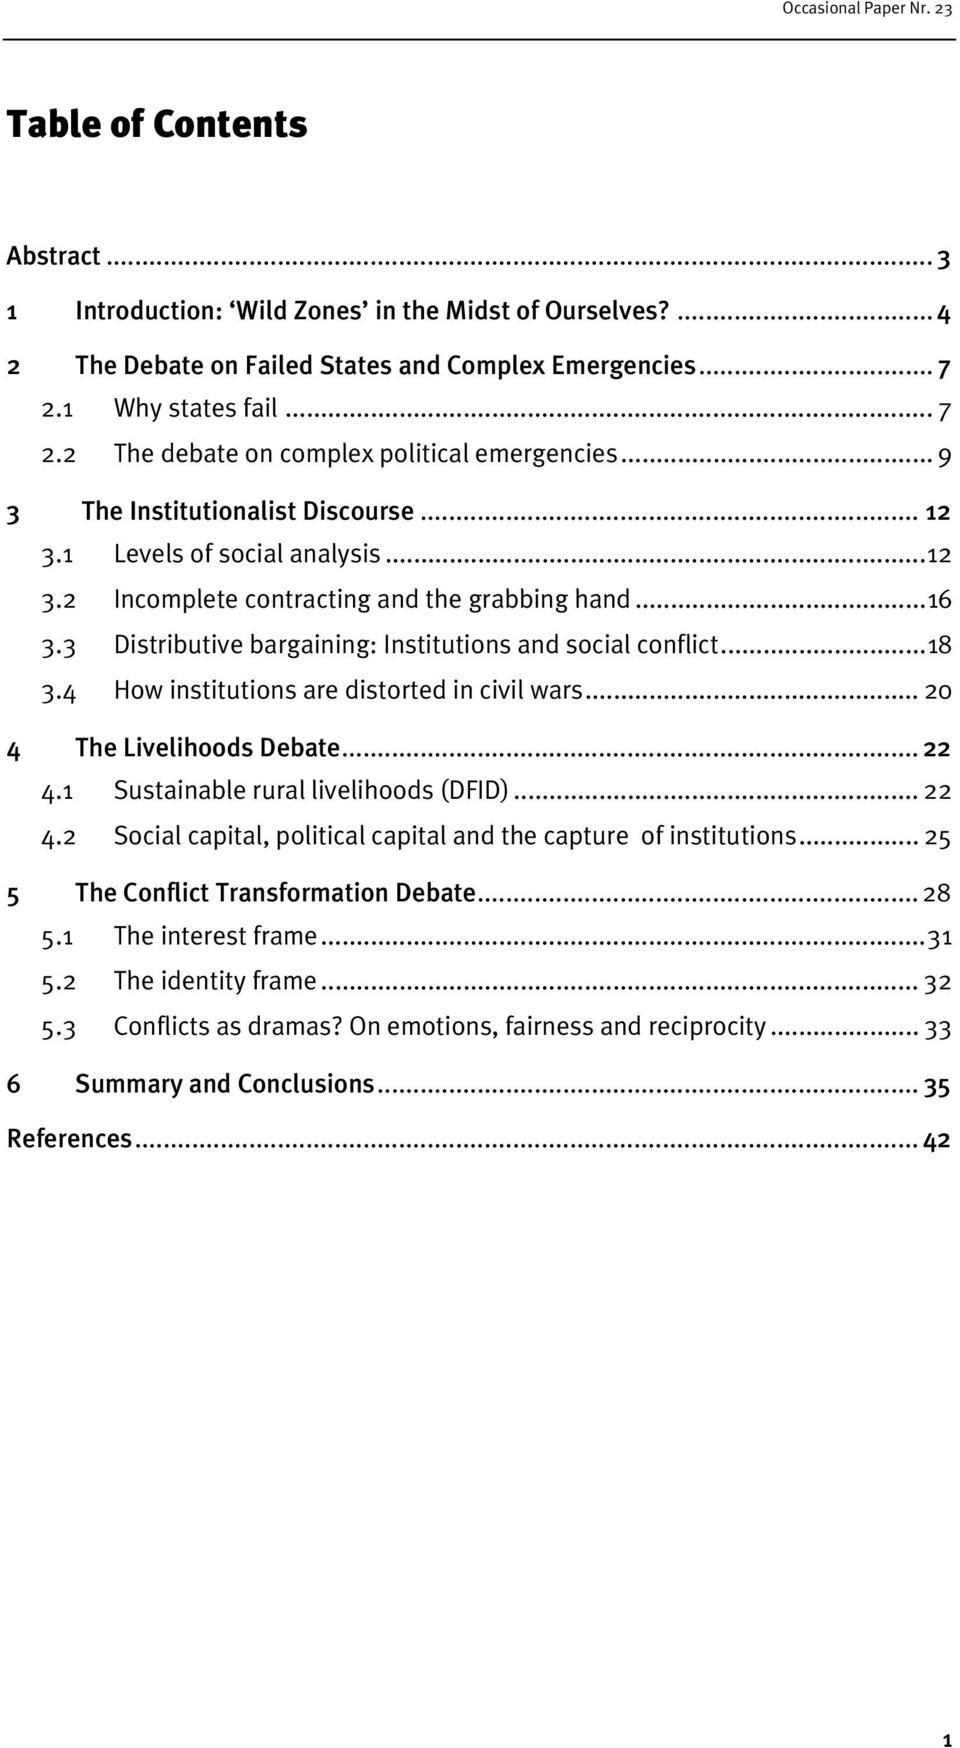 4 How institutions are distorted in civil wars... 20 4 The Livelihoods Debate... 22 4.1 Sustainable rural livelihoods (DFID)... 22 4.2 Social capital, political capital and the capture of institutions.